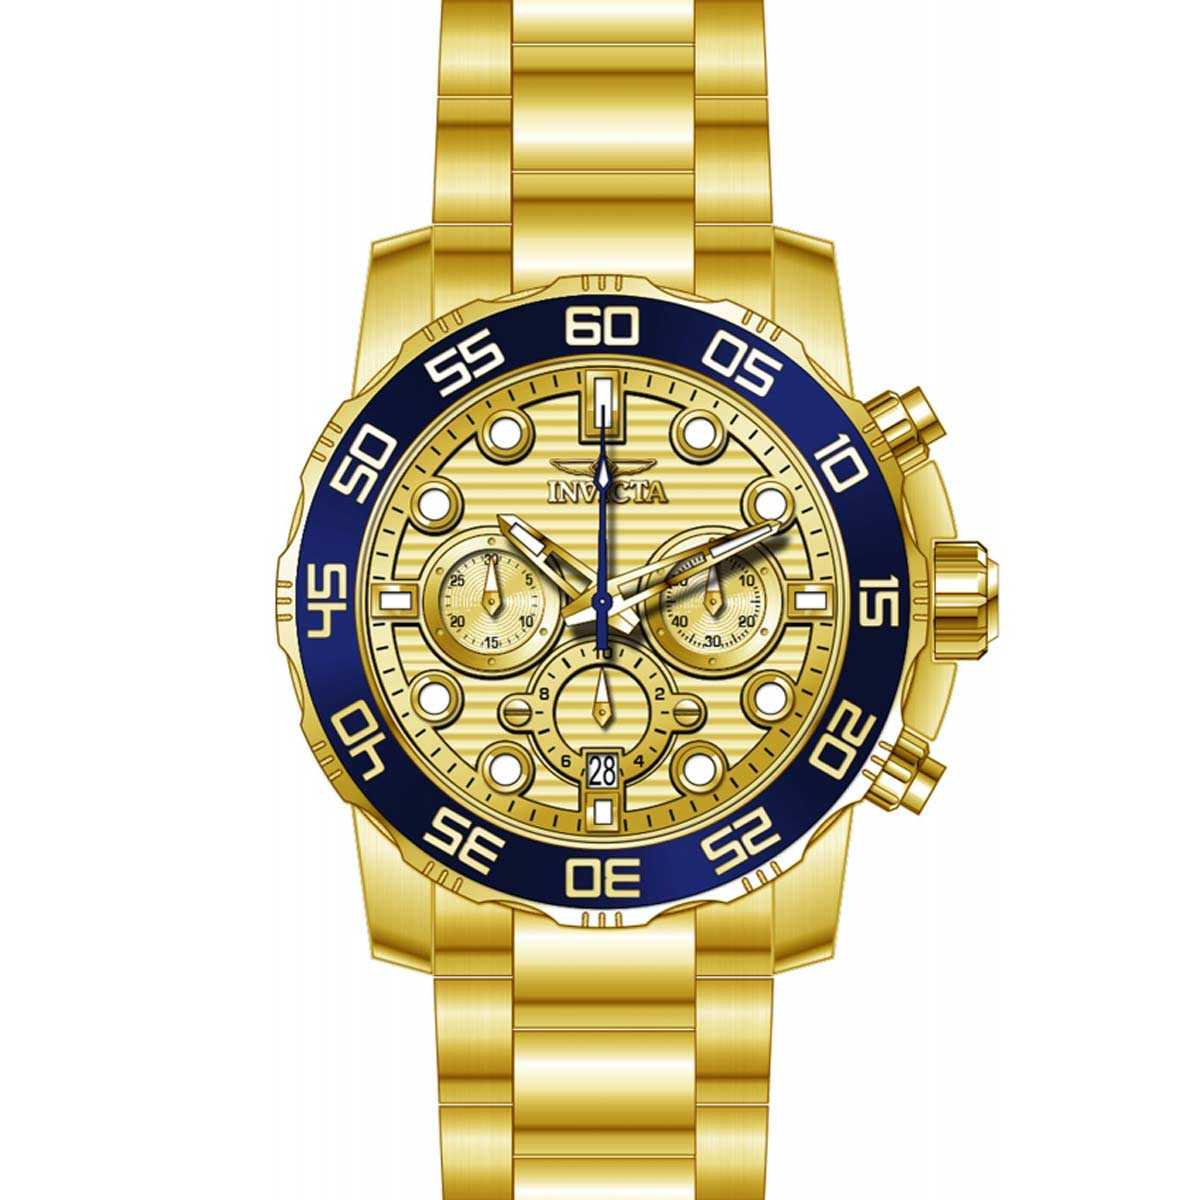 Invicta 22227 Men's Pro Diver Chronograph Gold Tone Dial Yellow Gold Steel Bracelet Watch